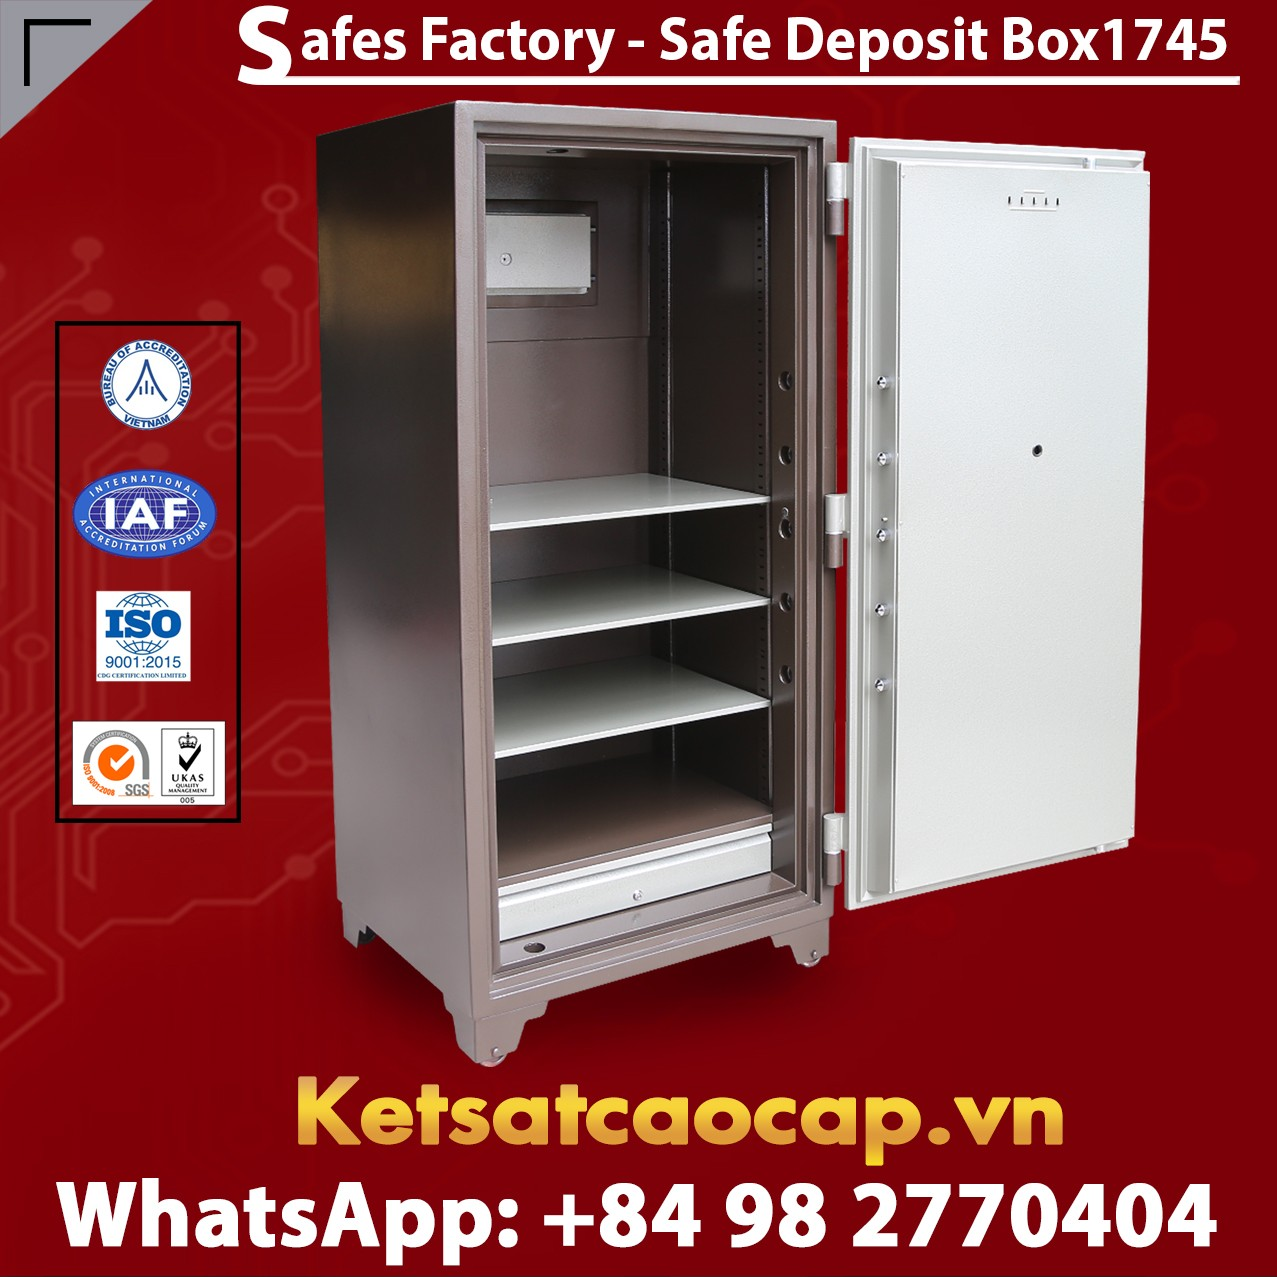 Bank Safes Deposit Box